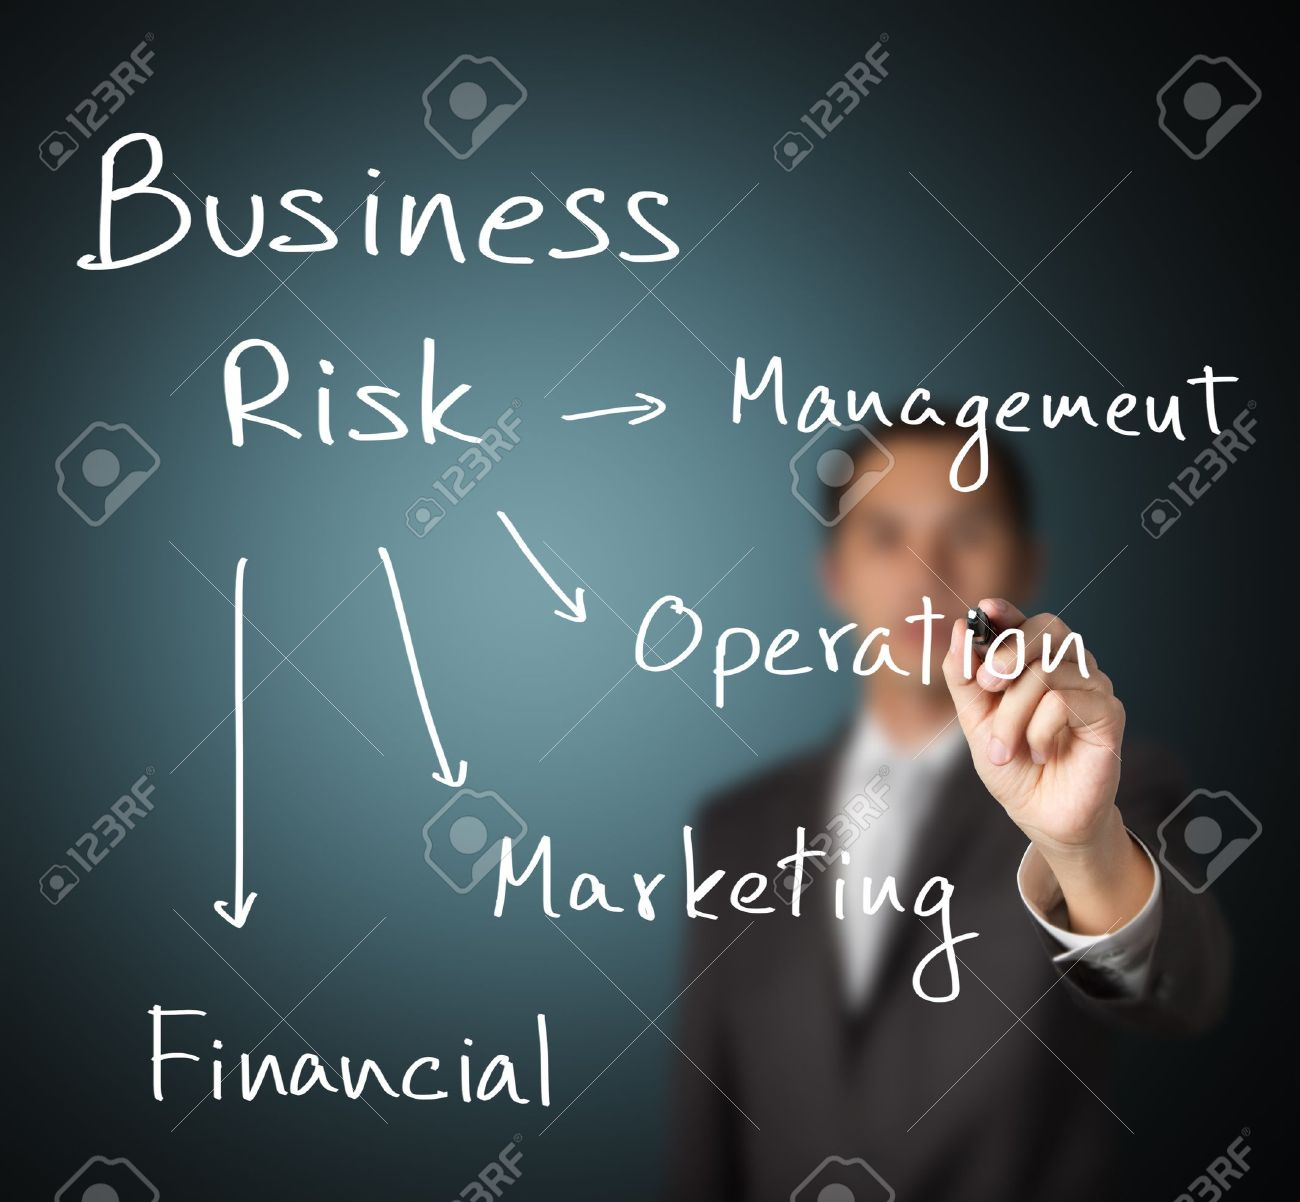 business man writing different type of business risk management stock photo business man writing different 4 type of business risk management operation marketing financial